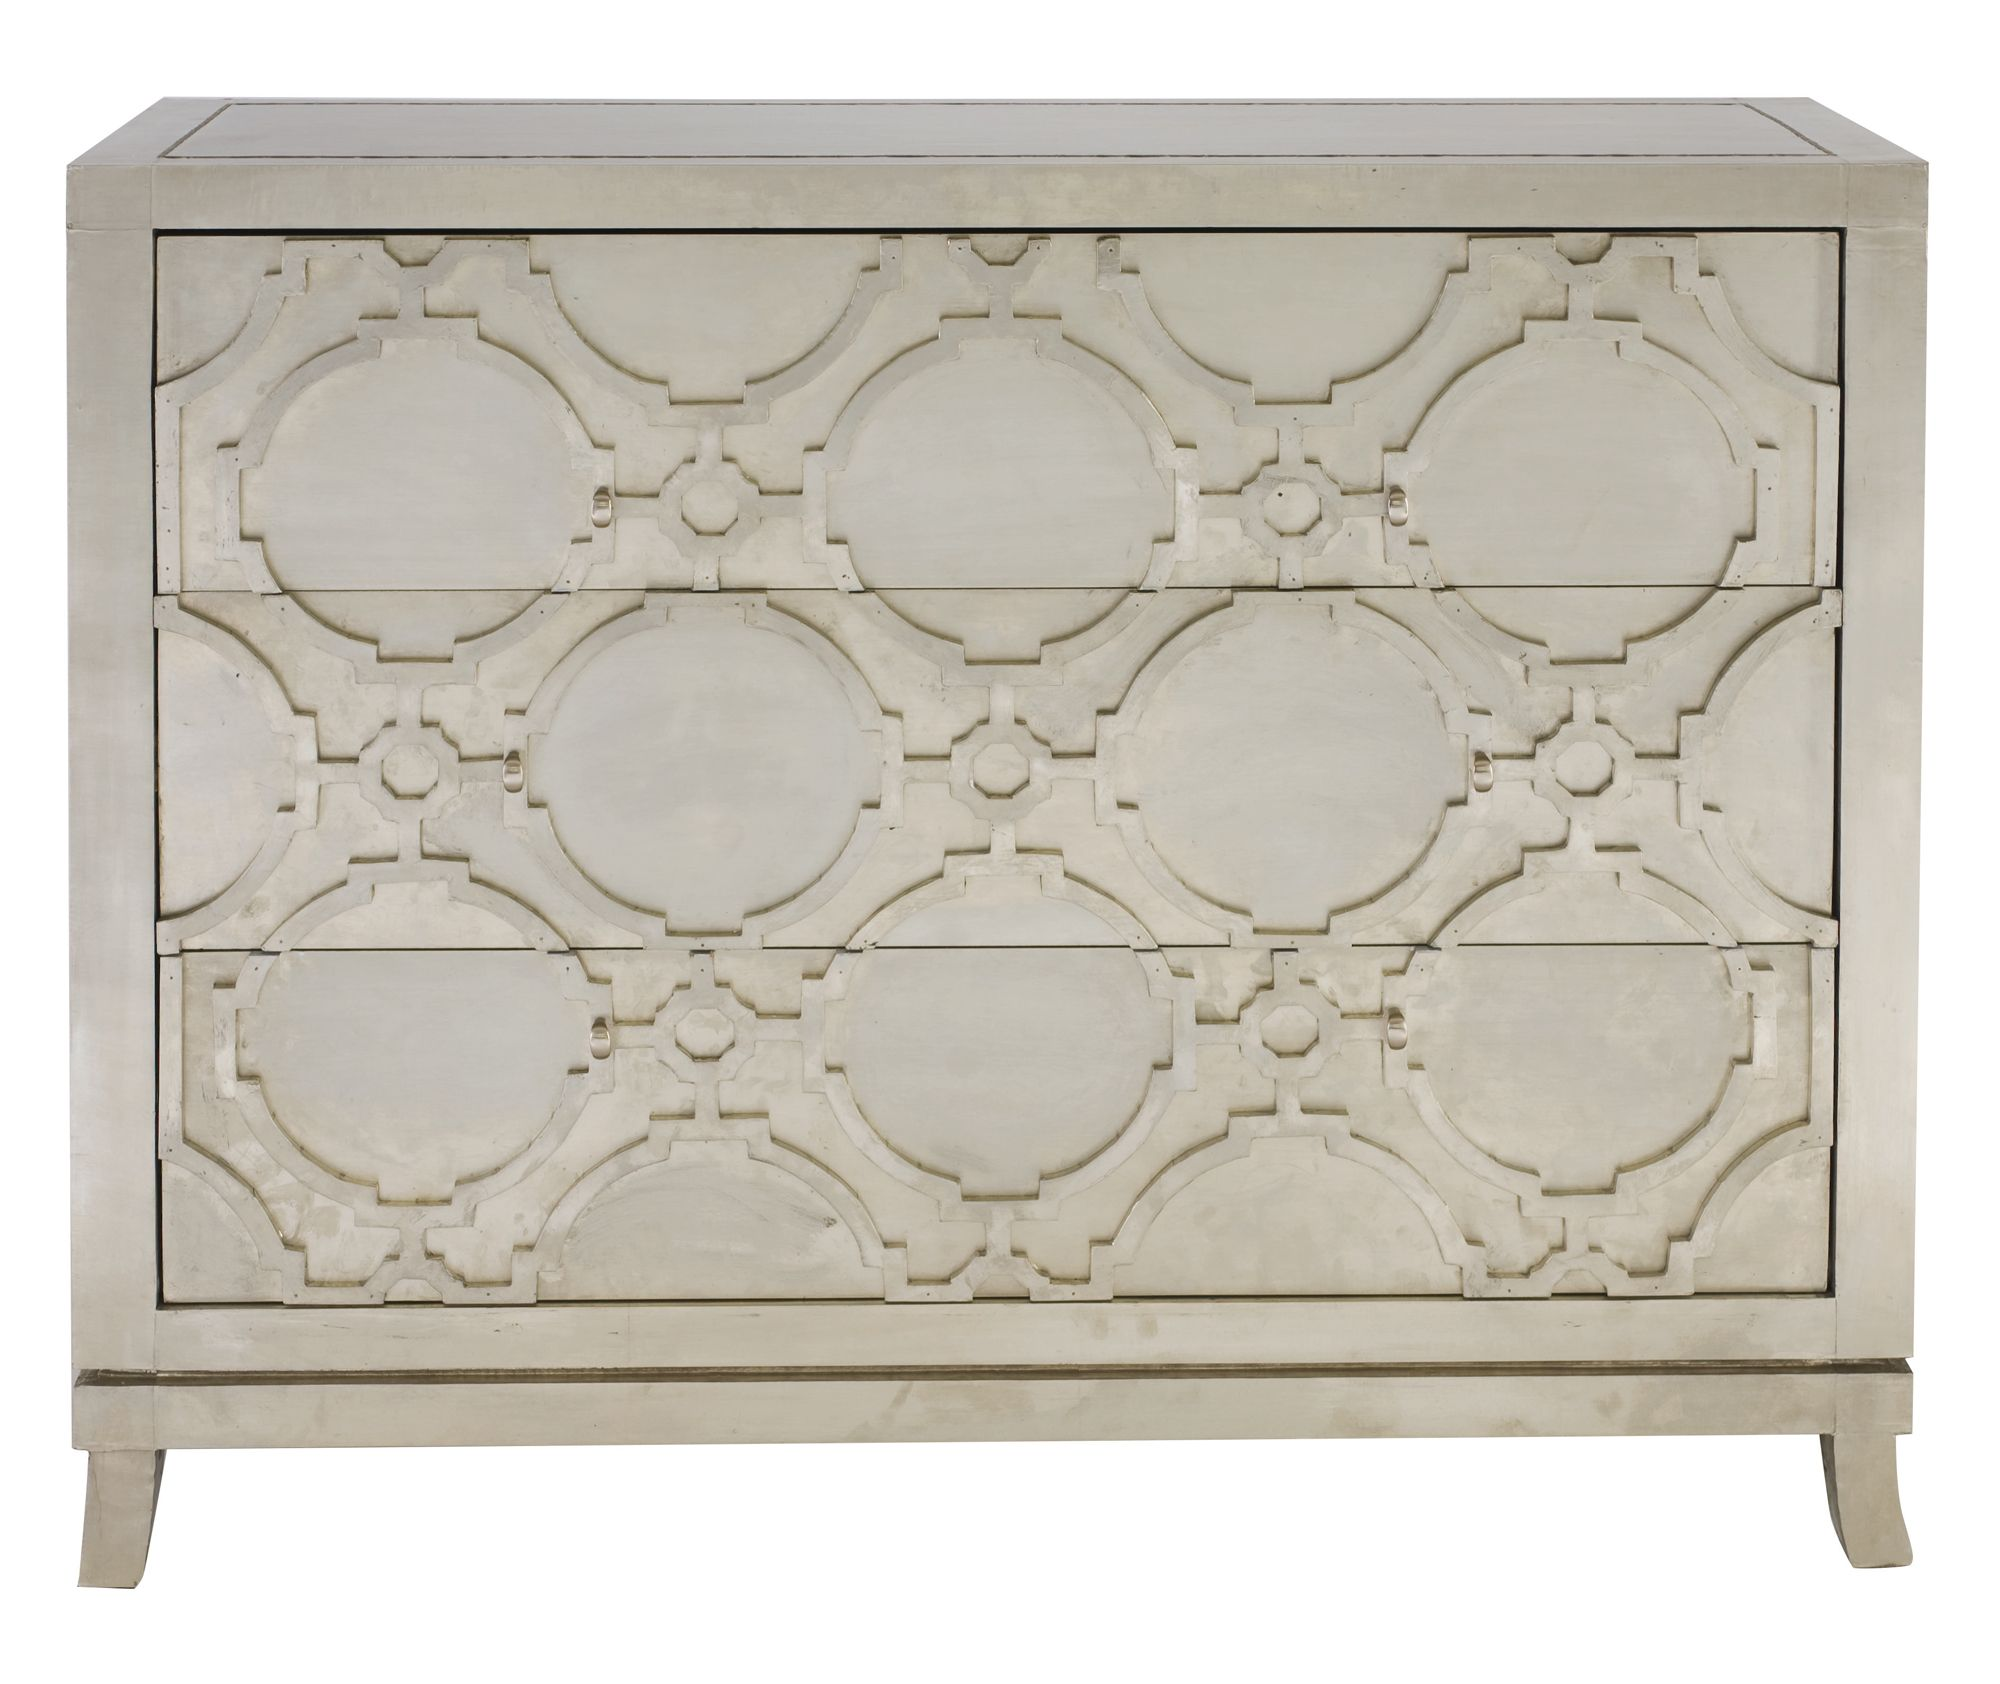 353032 Odessa Drawer Cabinet  Bernhardt W 475 D 185 H 38 Unique Bedroom Chest Design Decoration